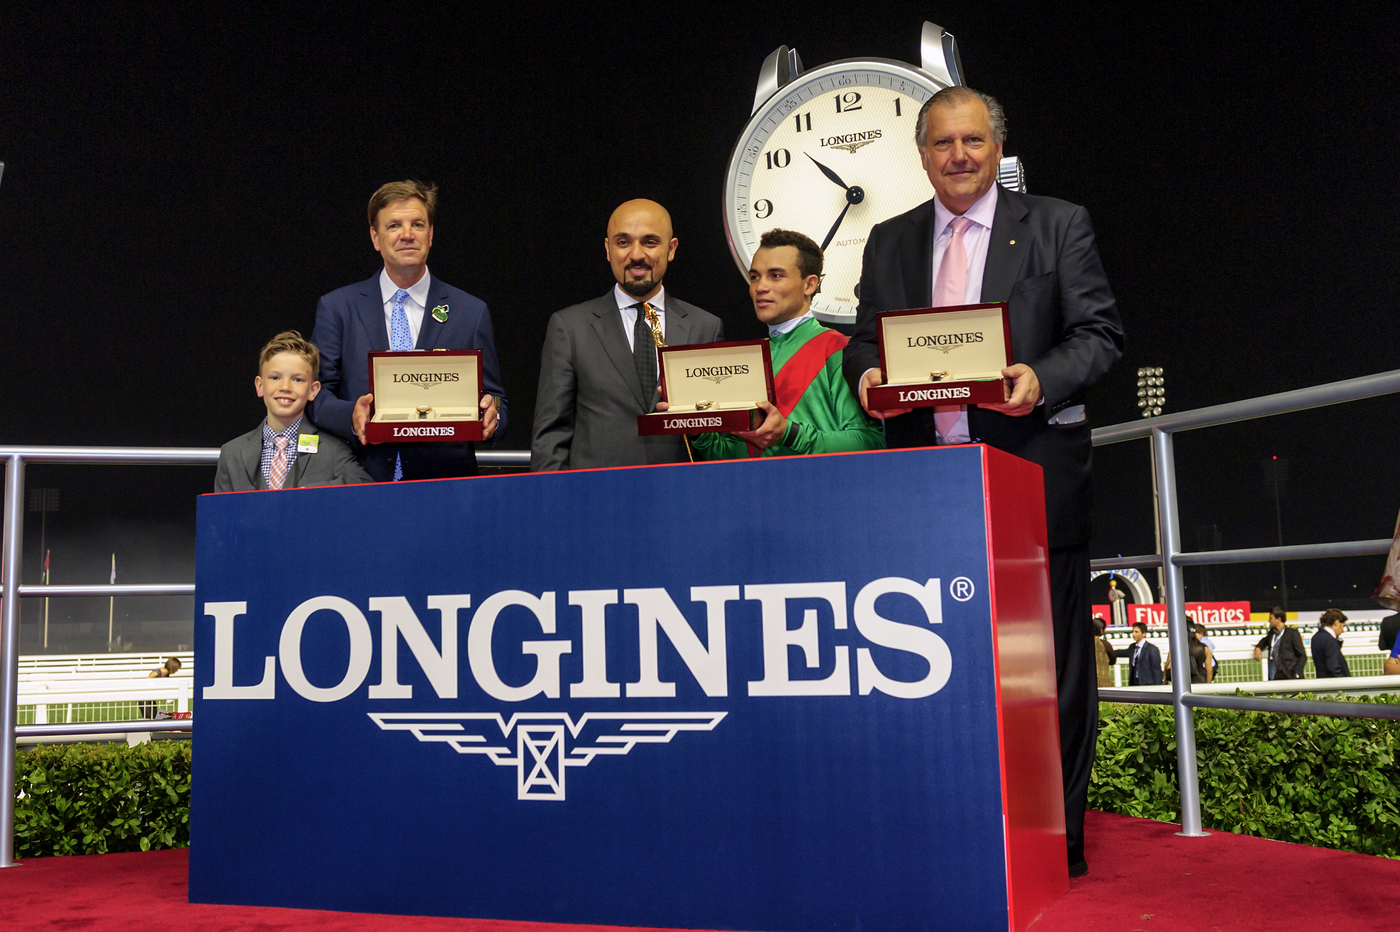 Longines Flat Racing Event: Longines adds its touch of elegance to the Dubai World Cup 5